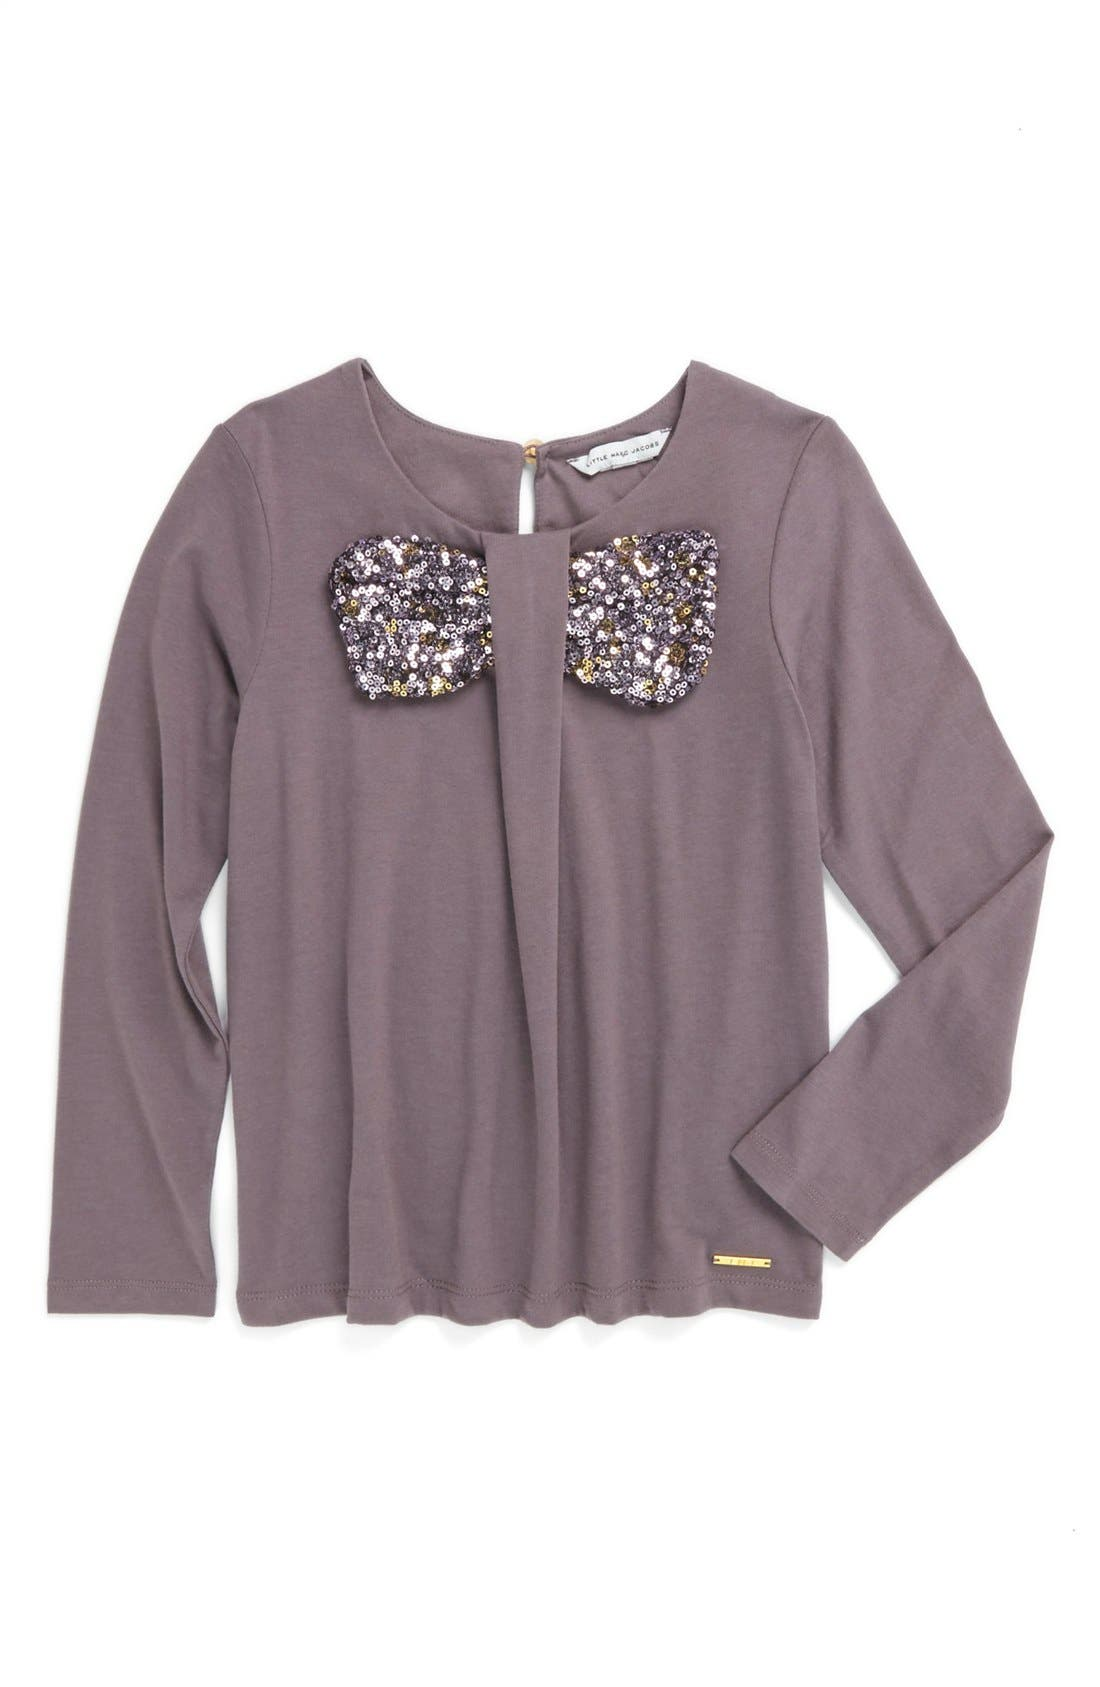 Main Image - LITTLE MARC JACOBS Sequin Bow Top (Toddler Girls, Little Girls & Big Girls)